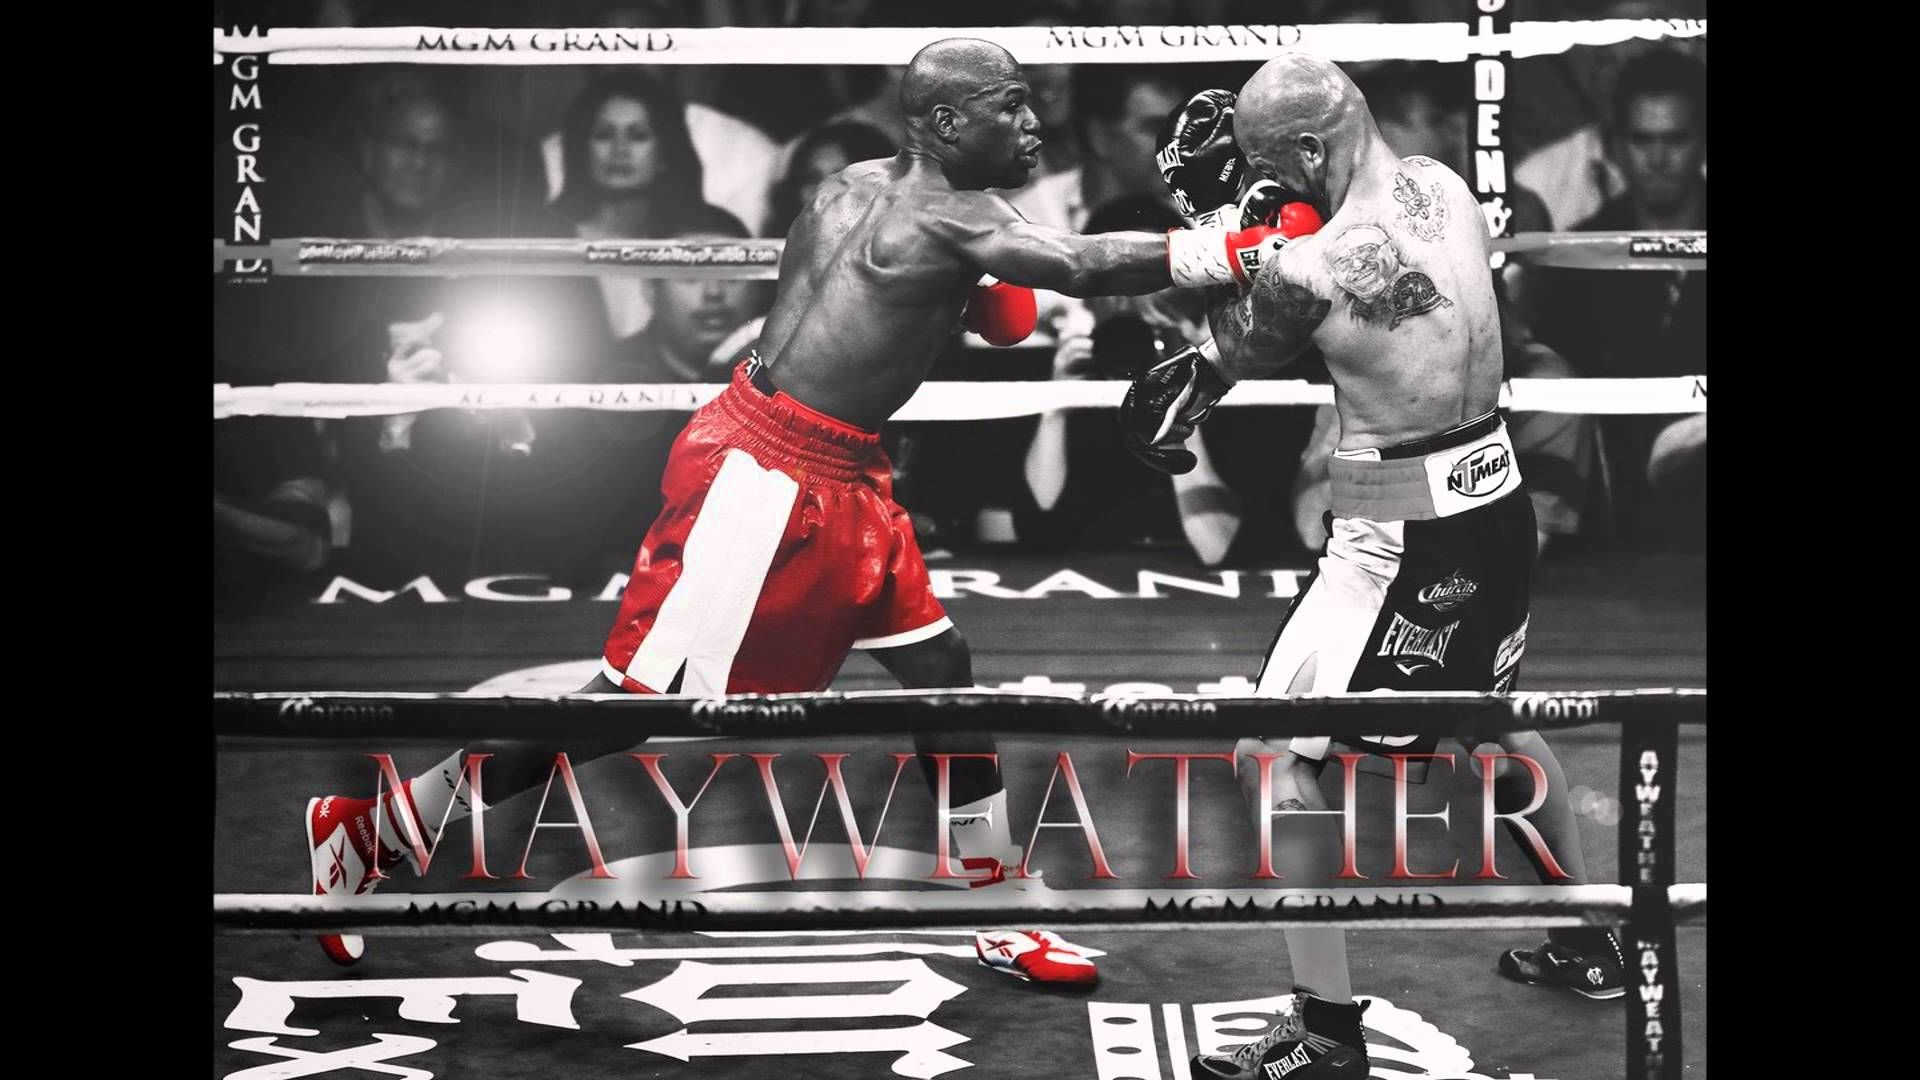 Floyd mayweather wallpapers wallpapers pinterest floyd floyd mayweather wallpapers thecheapjerseys Choice Image